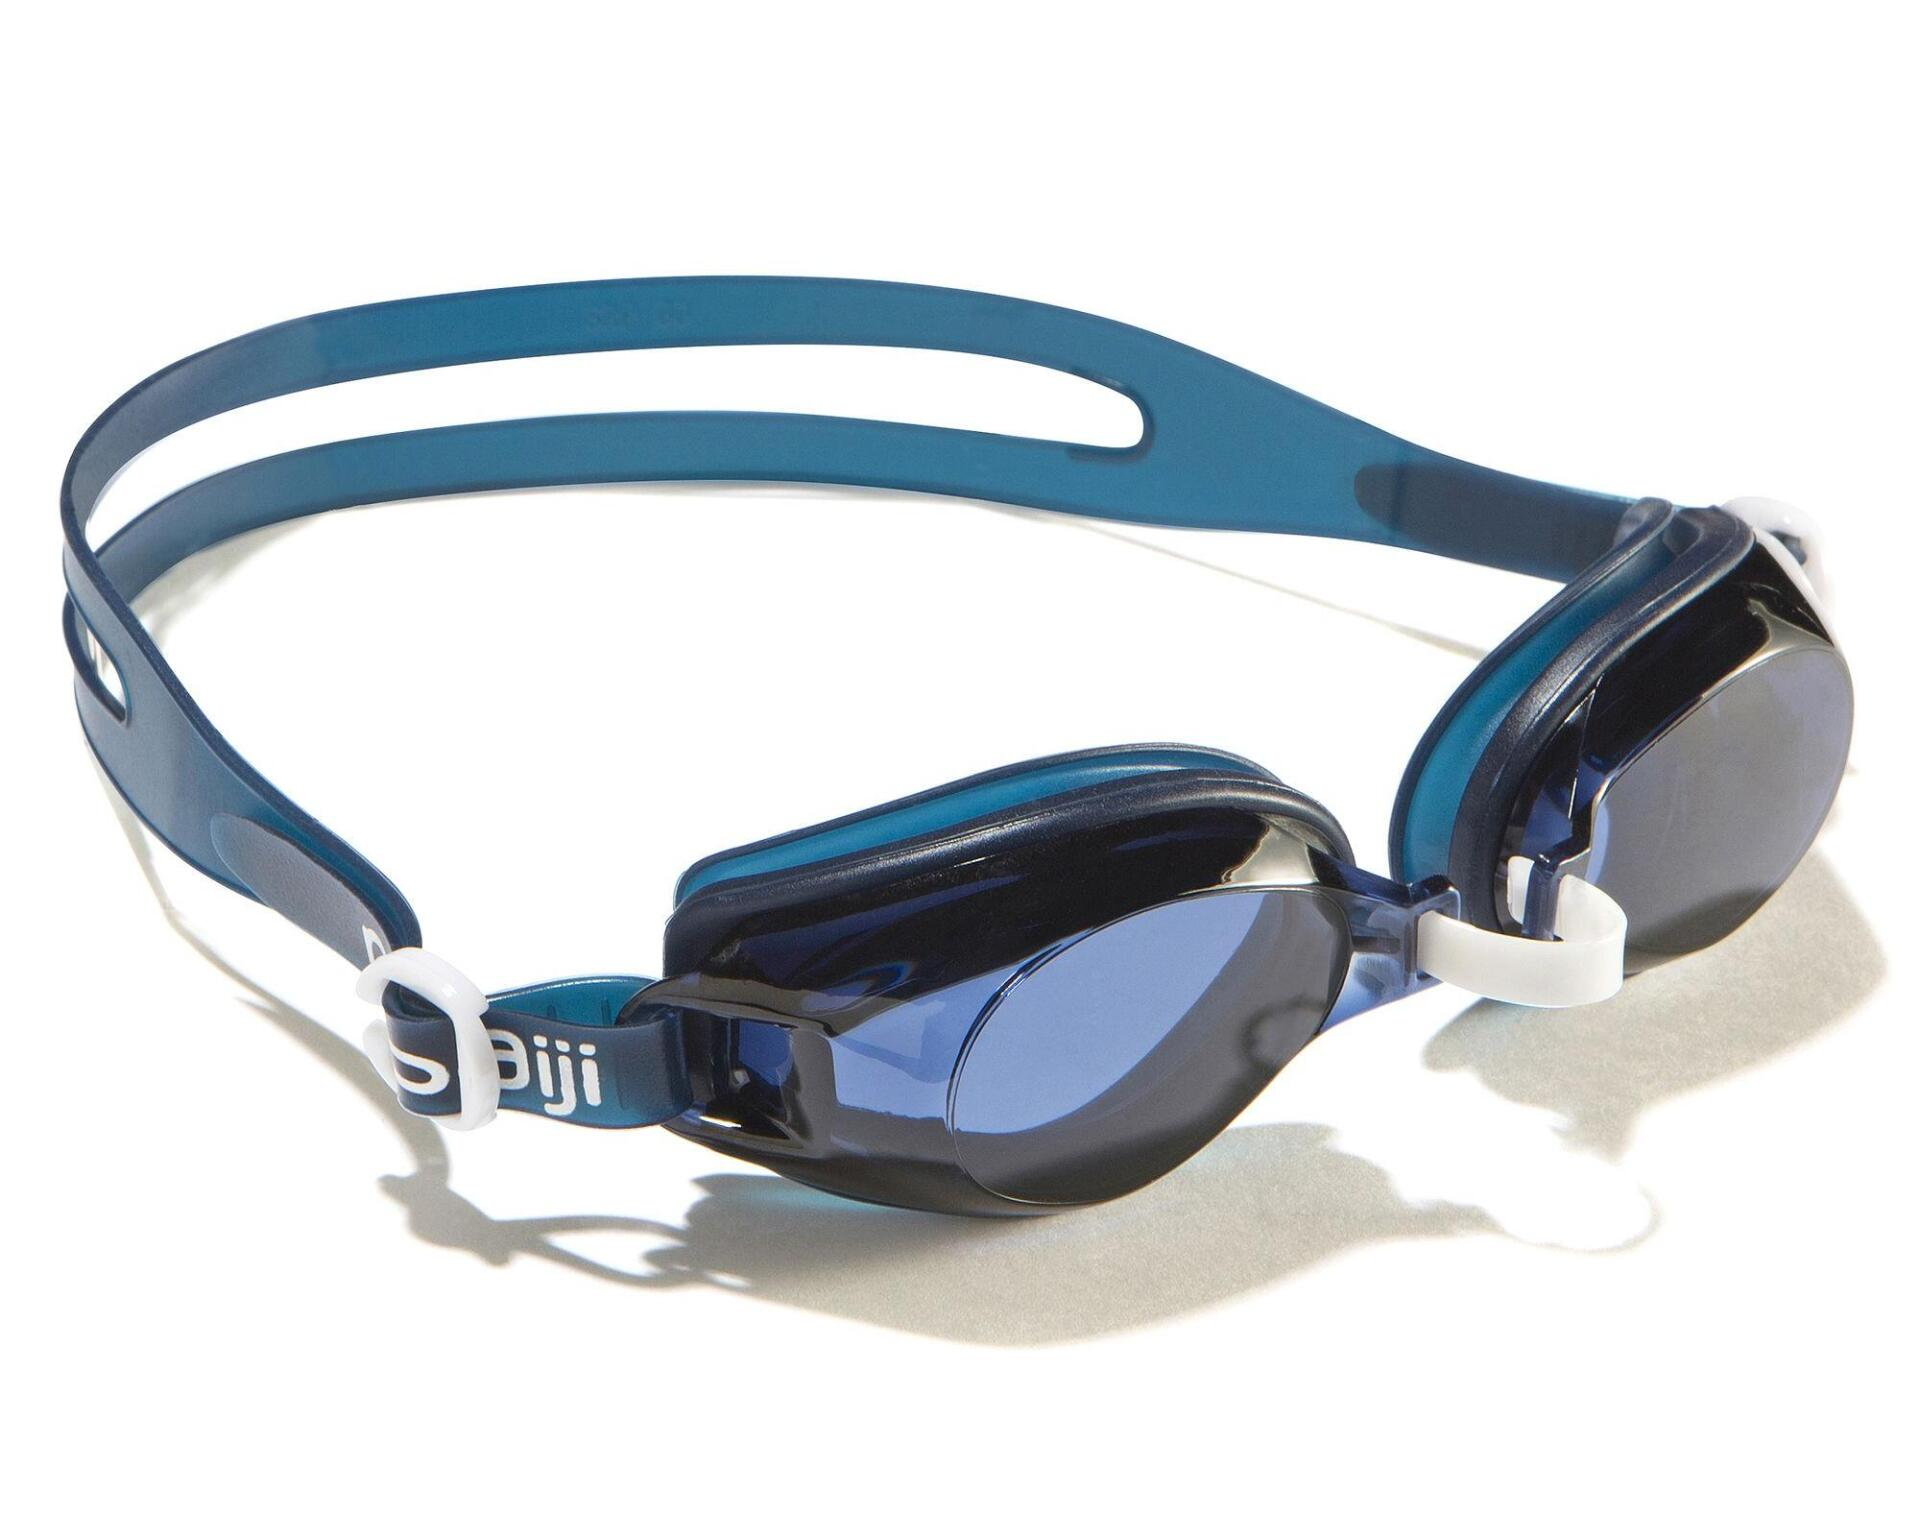 AMA 700 STANDARD SWIMMING GOGGLES SIZE L - BLUE WHITE